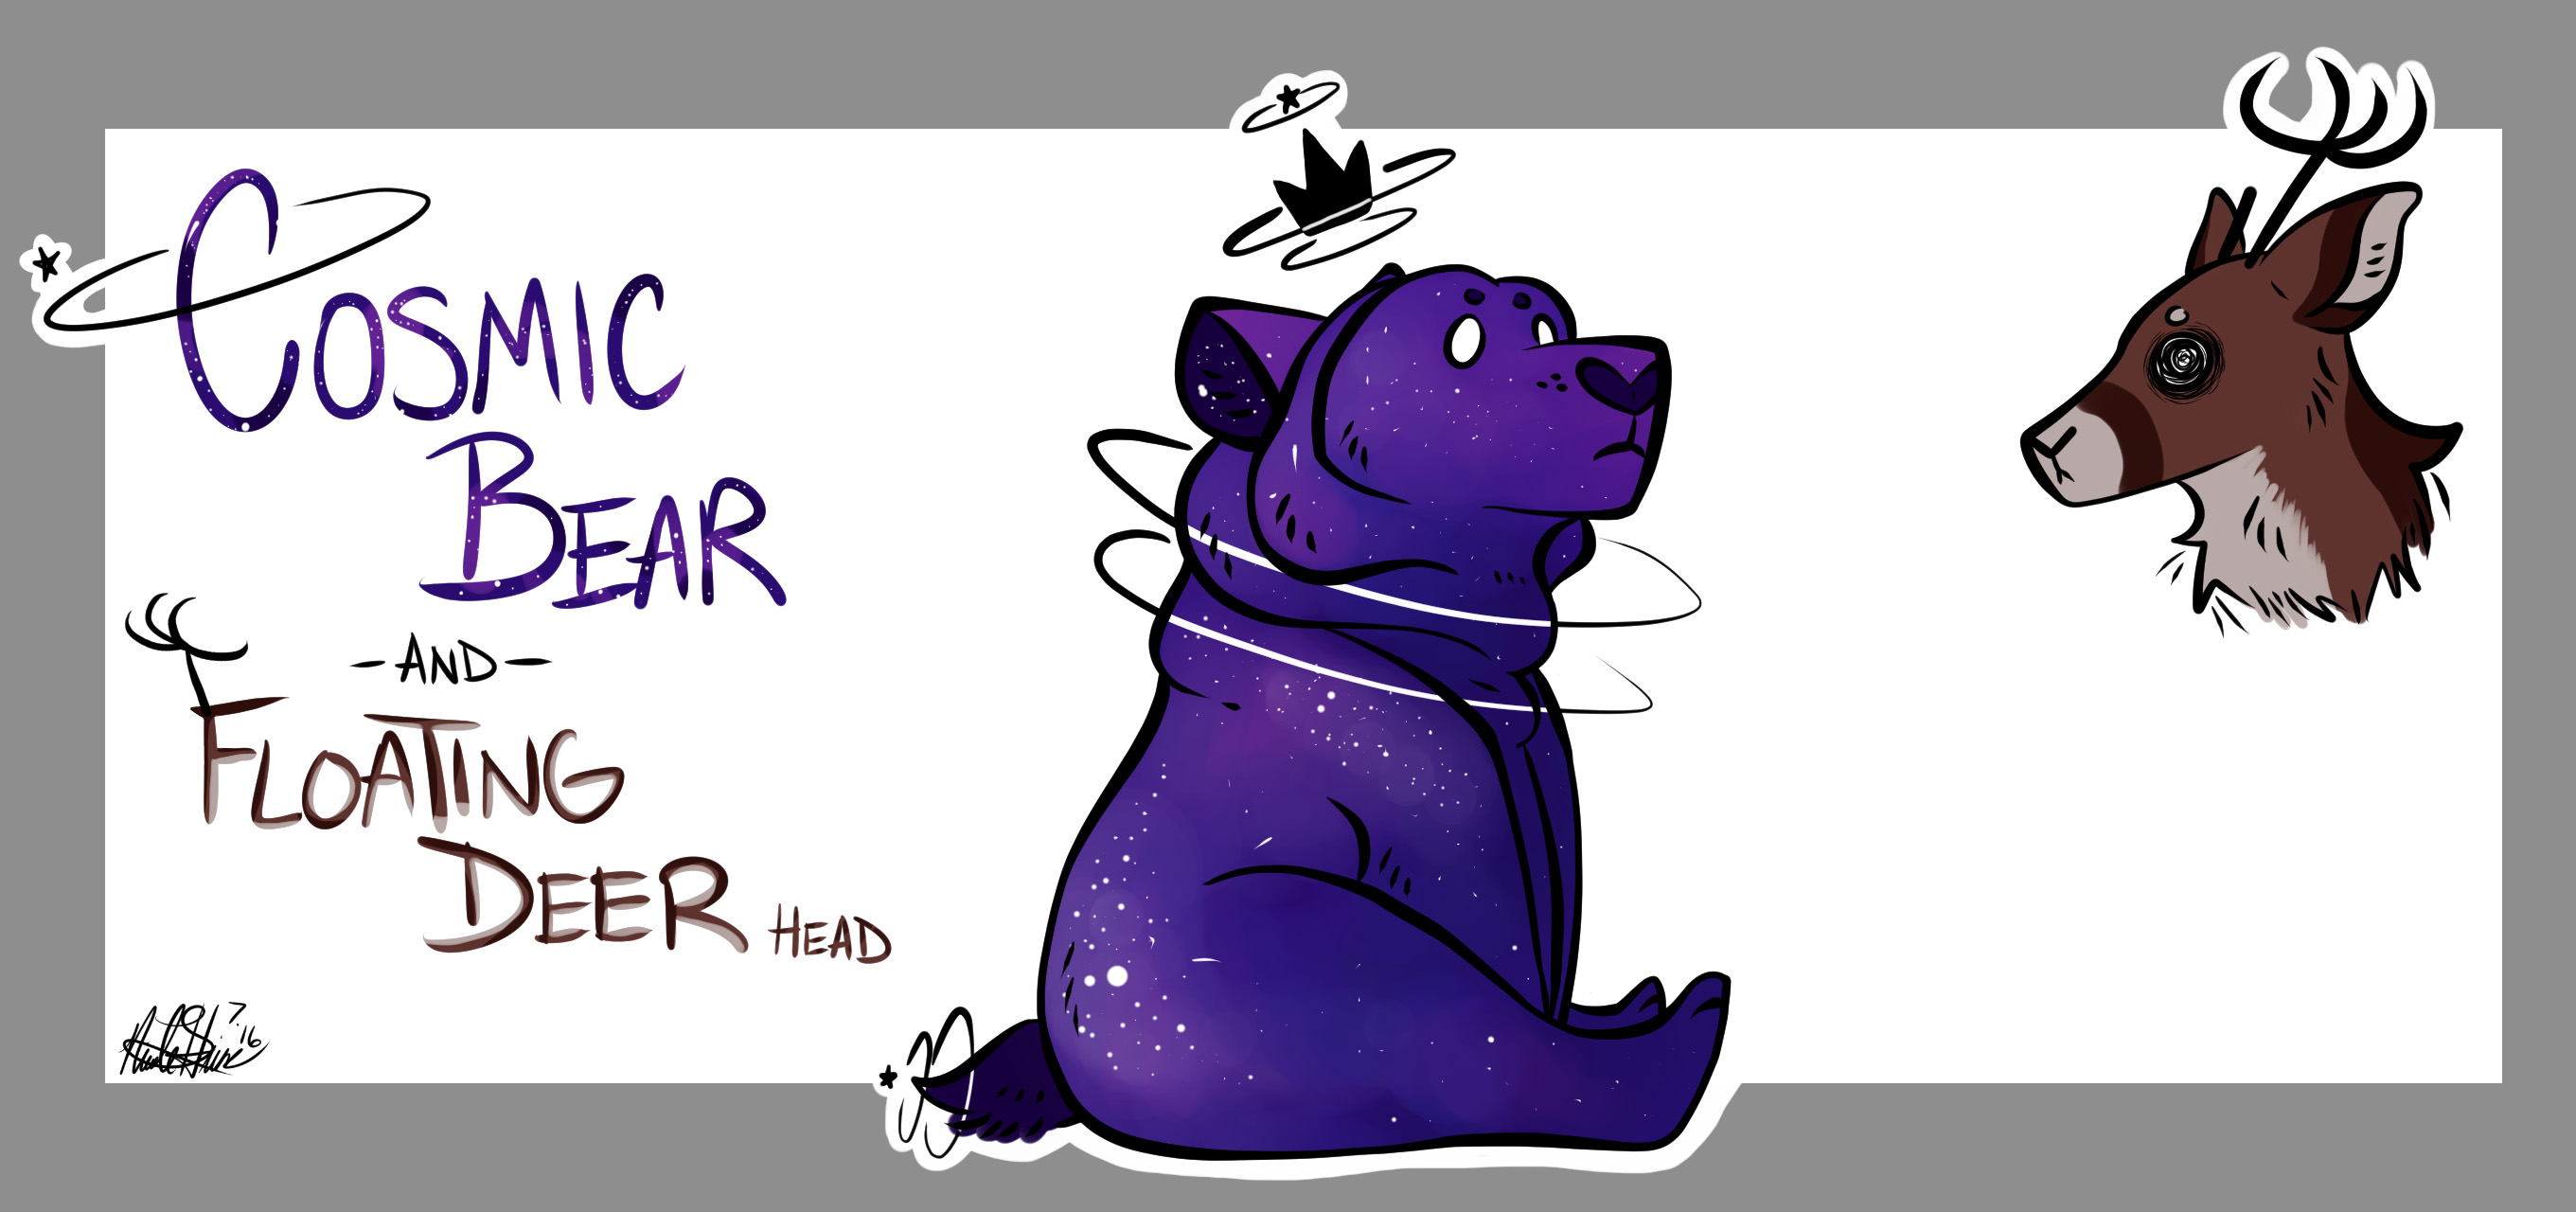 Cosmic Bear and Floating Deer Head